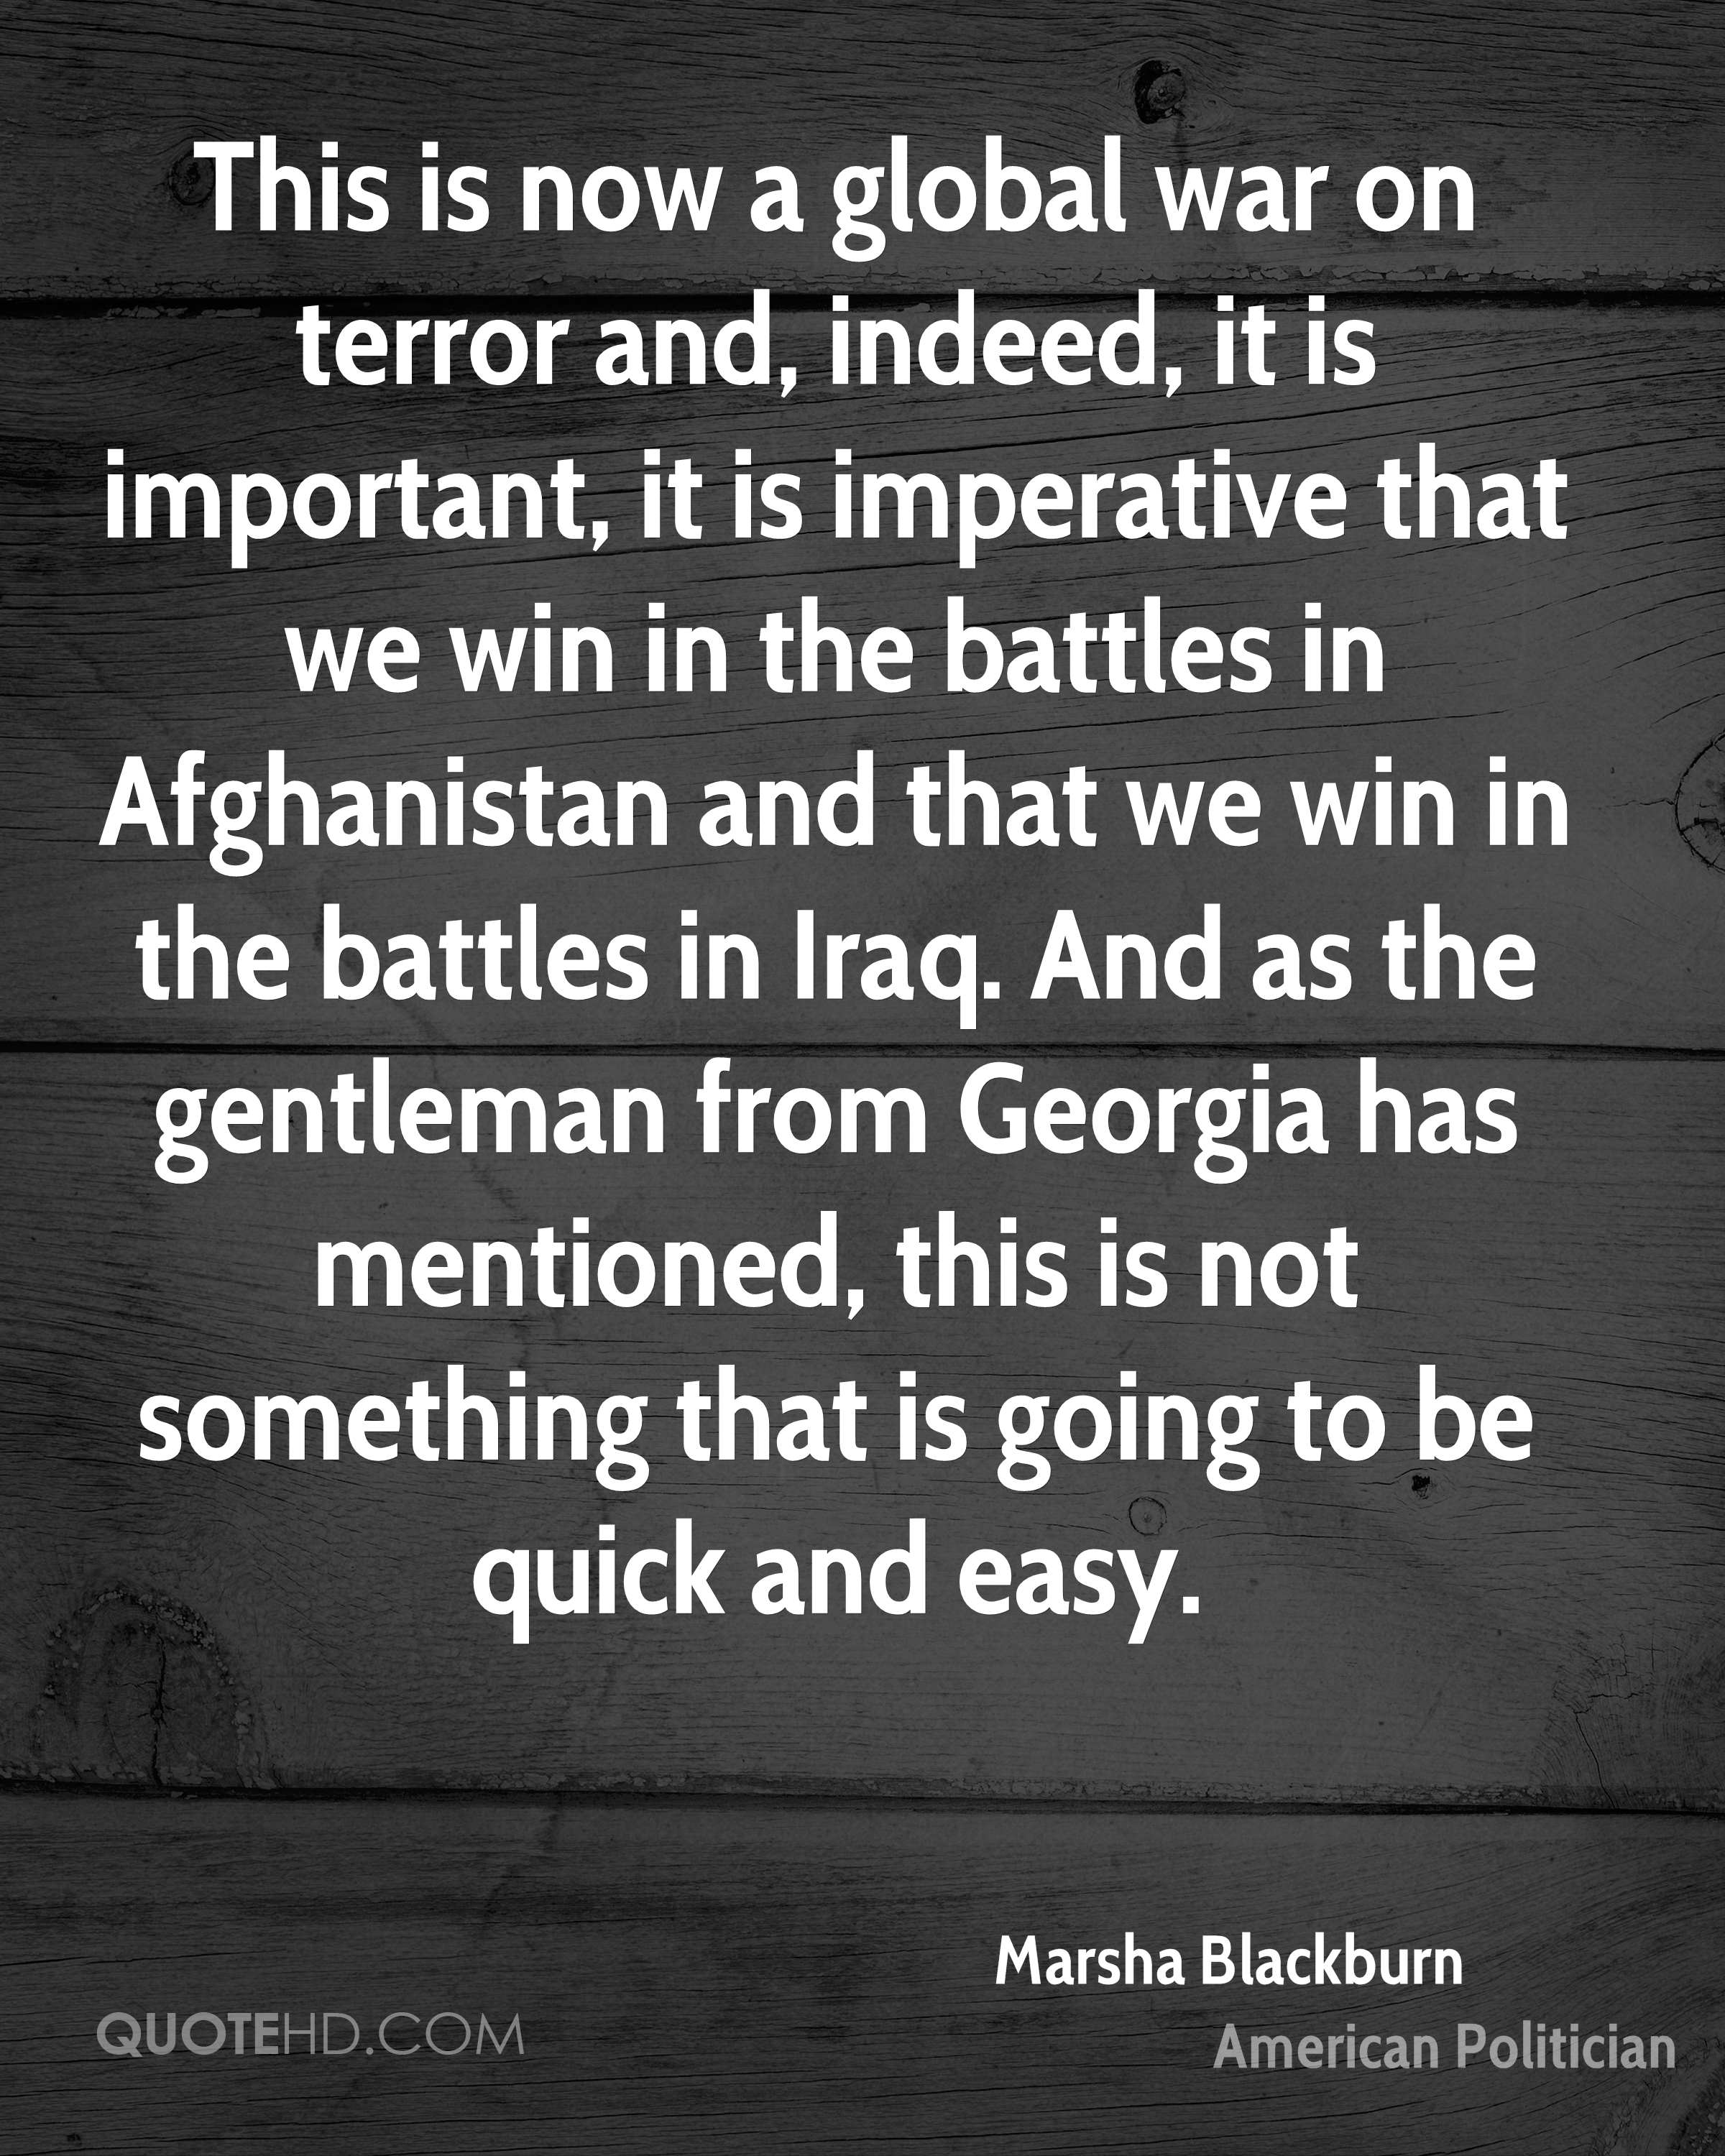 This is now a global war on terror and, indeed, it is important, it is imperative that we win in the battles in Afghanistan and that we win in the battles in Iraq. And as the gentleman from Georgia has mentioned, this is not something that is going to be quick and easy.